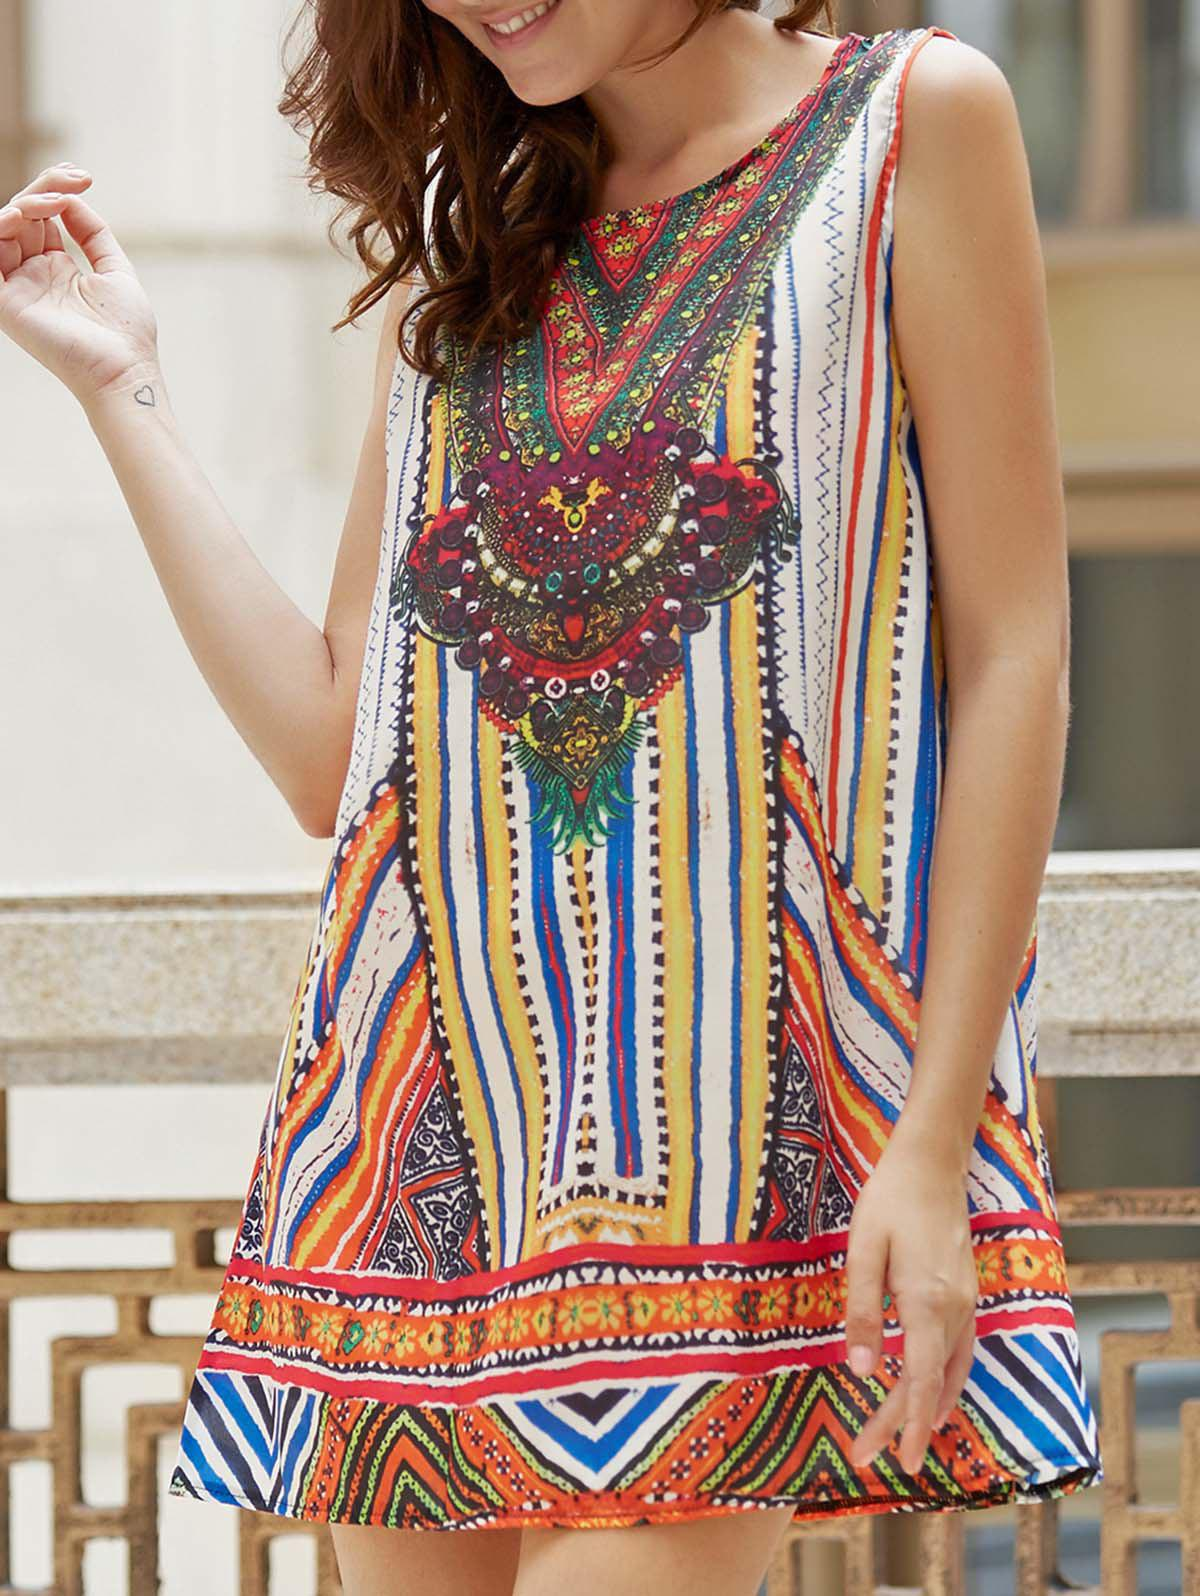 Ethnic Style Sleeveless Colorful Print Tank Top Dress For Women